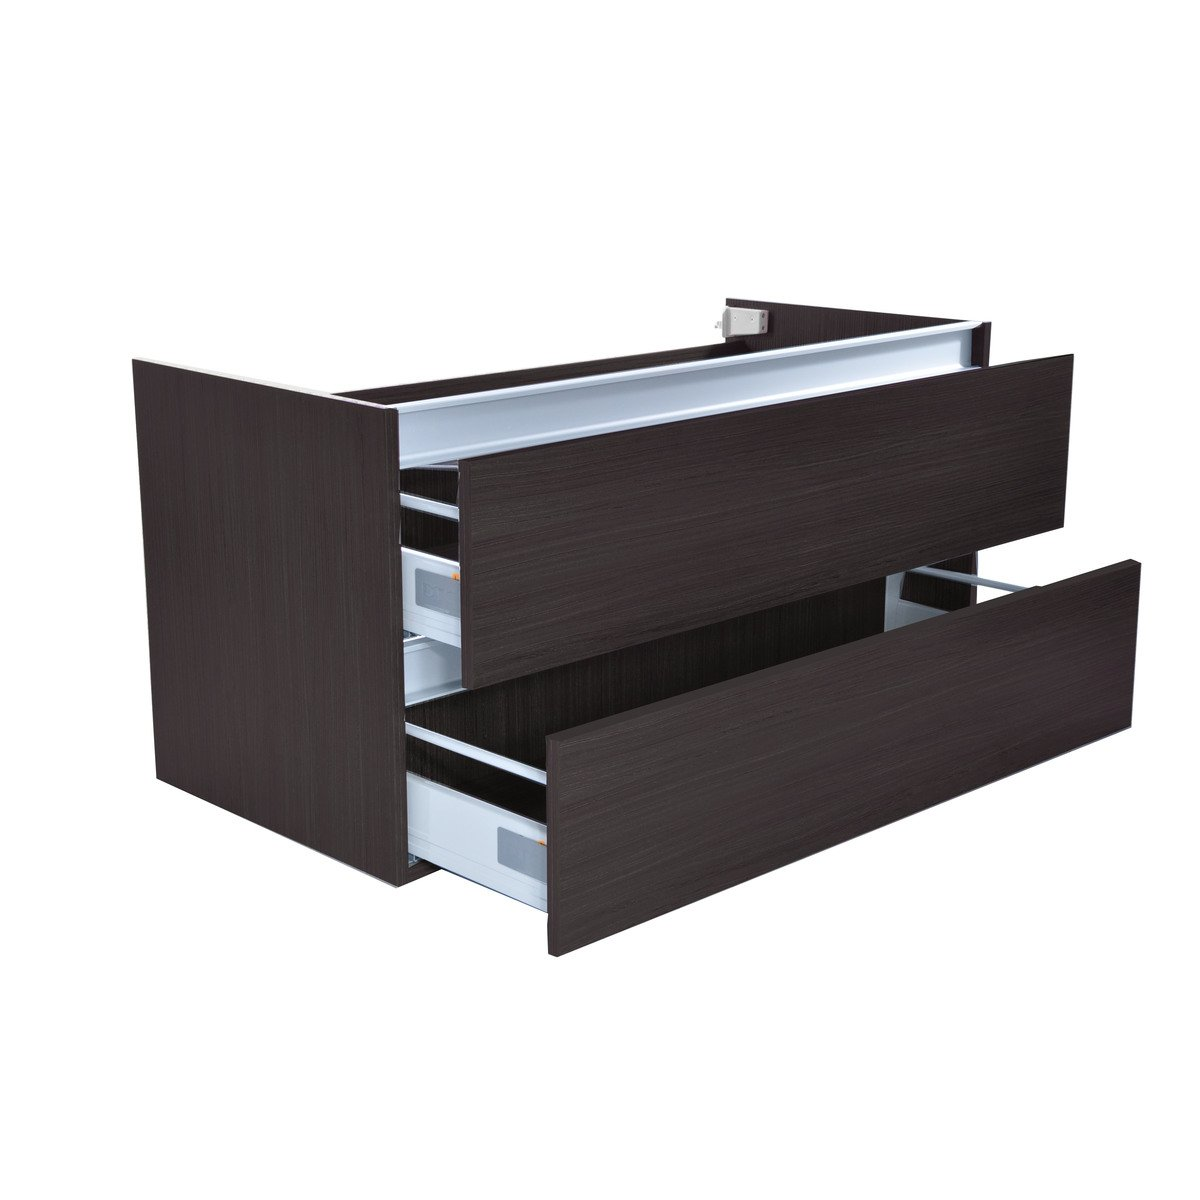 praya vision meuble sous lavabo 2 tiroirs 100x47cm bois nervur gris. Black Bedroom Furniture Sets. Home Design Ideas